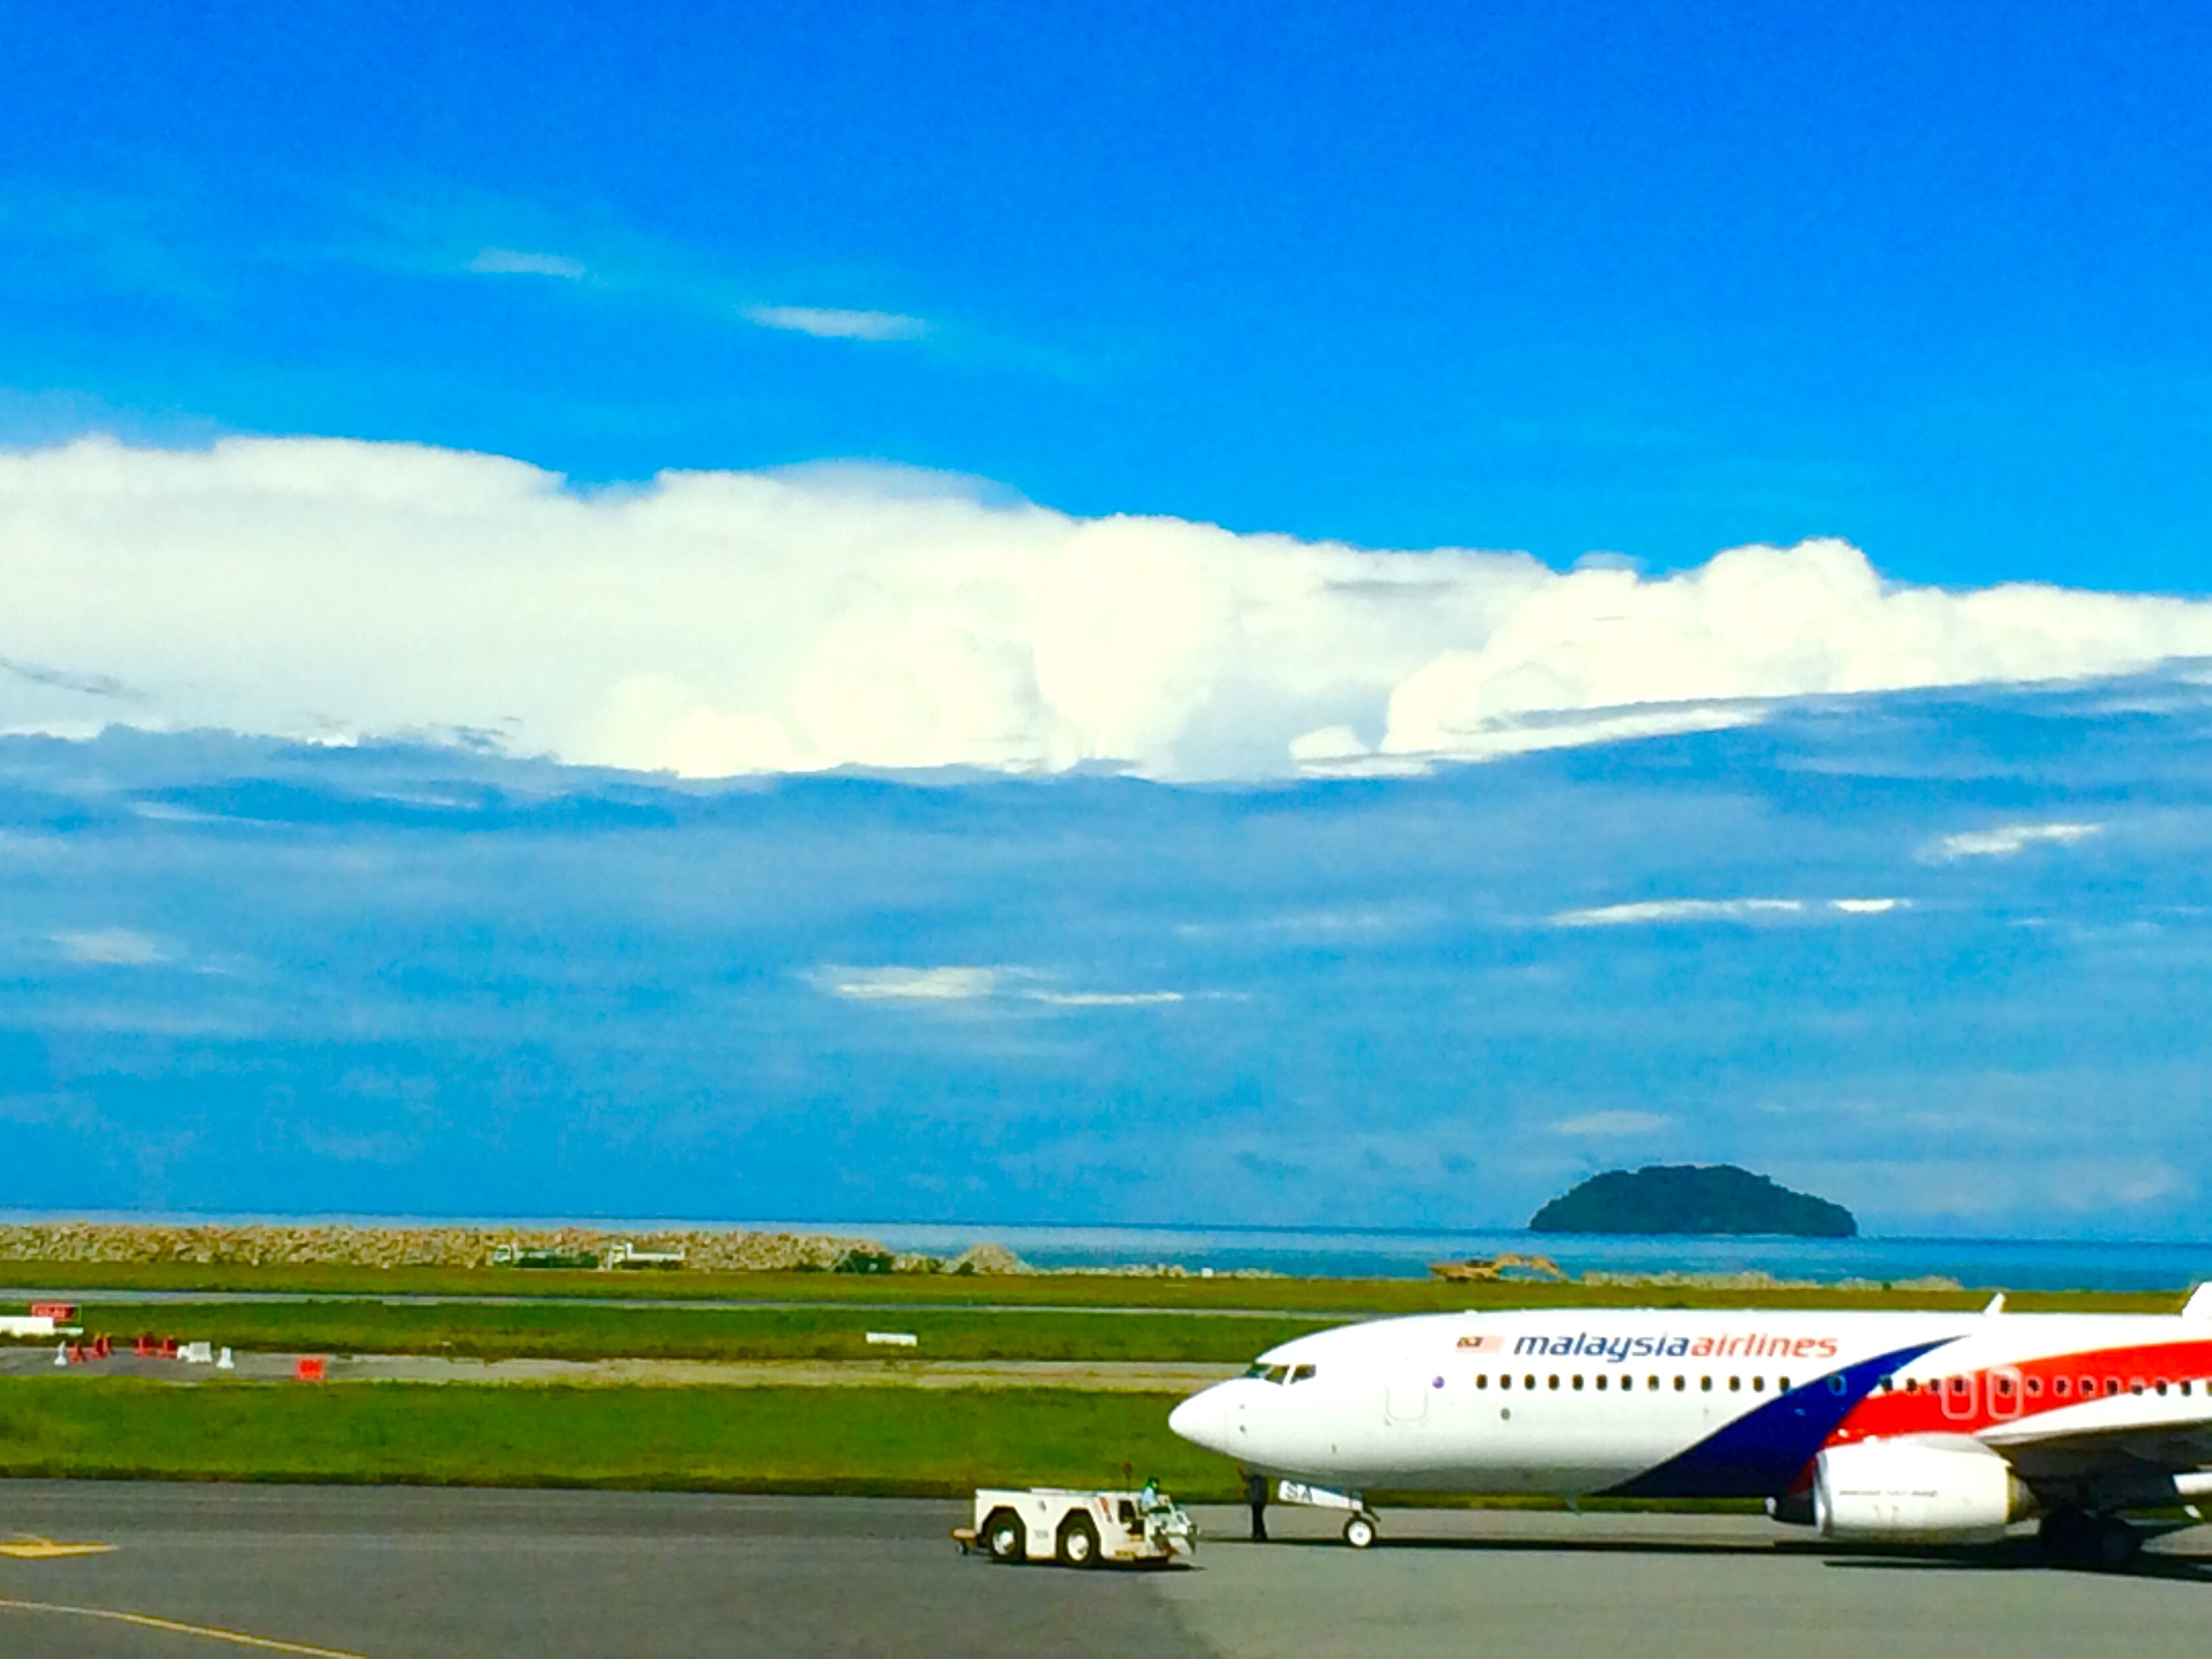 One of my many flights with Malaysia Airline